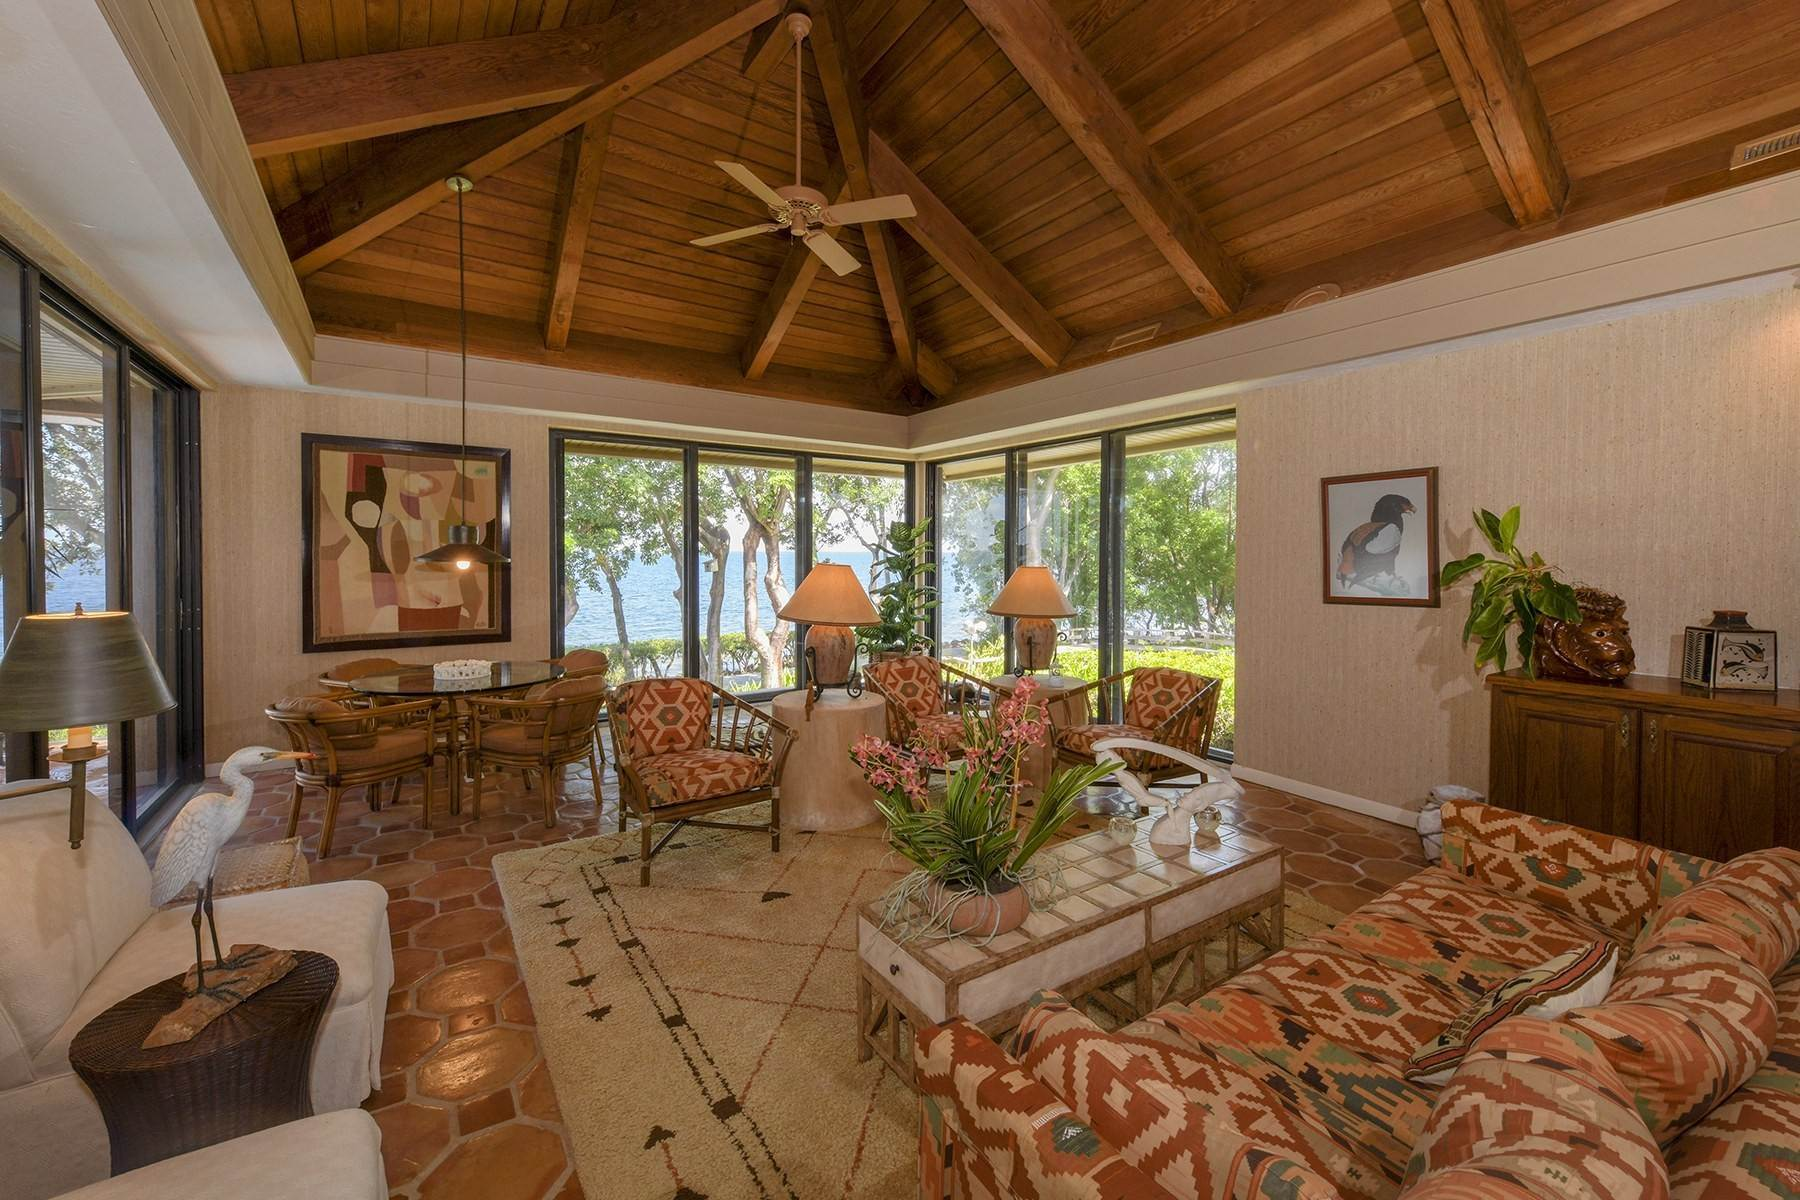 7. Property for Sale at 10 Cannon Point, Key Largo, FL 10 Cannon Point Key Largo, Florida 33037 United States